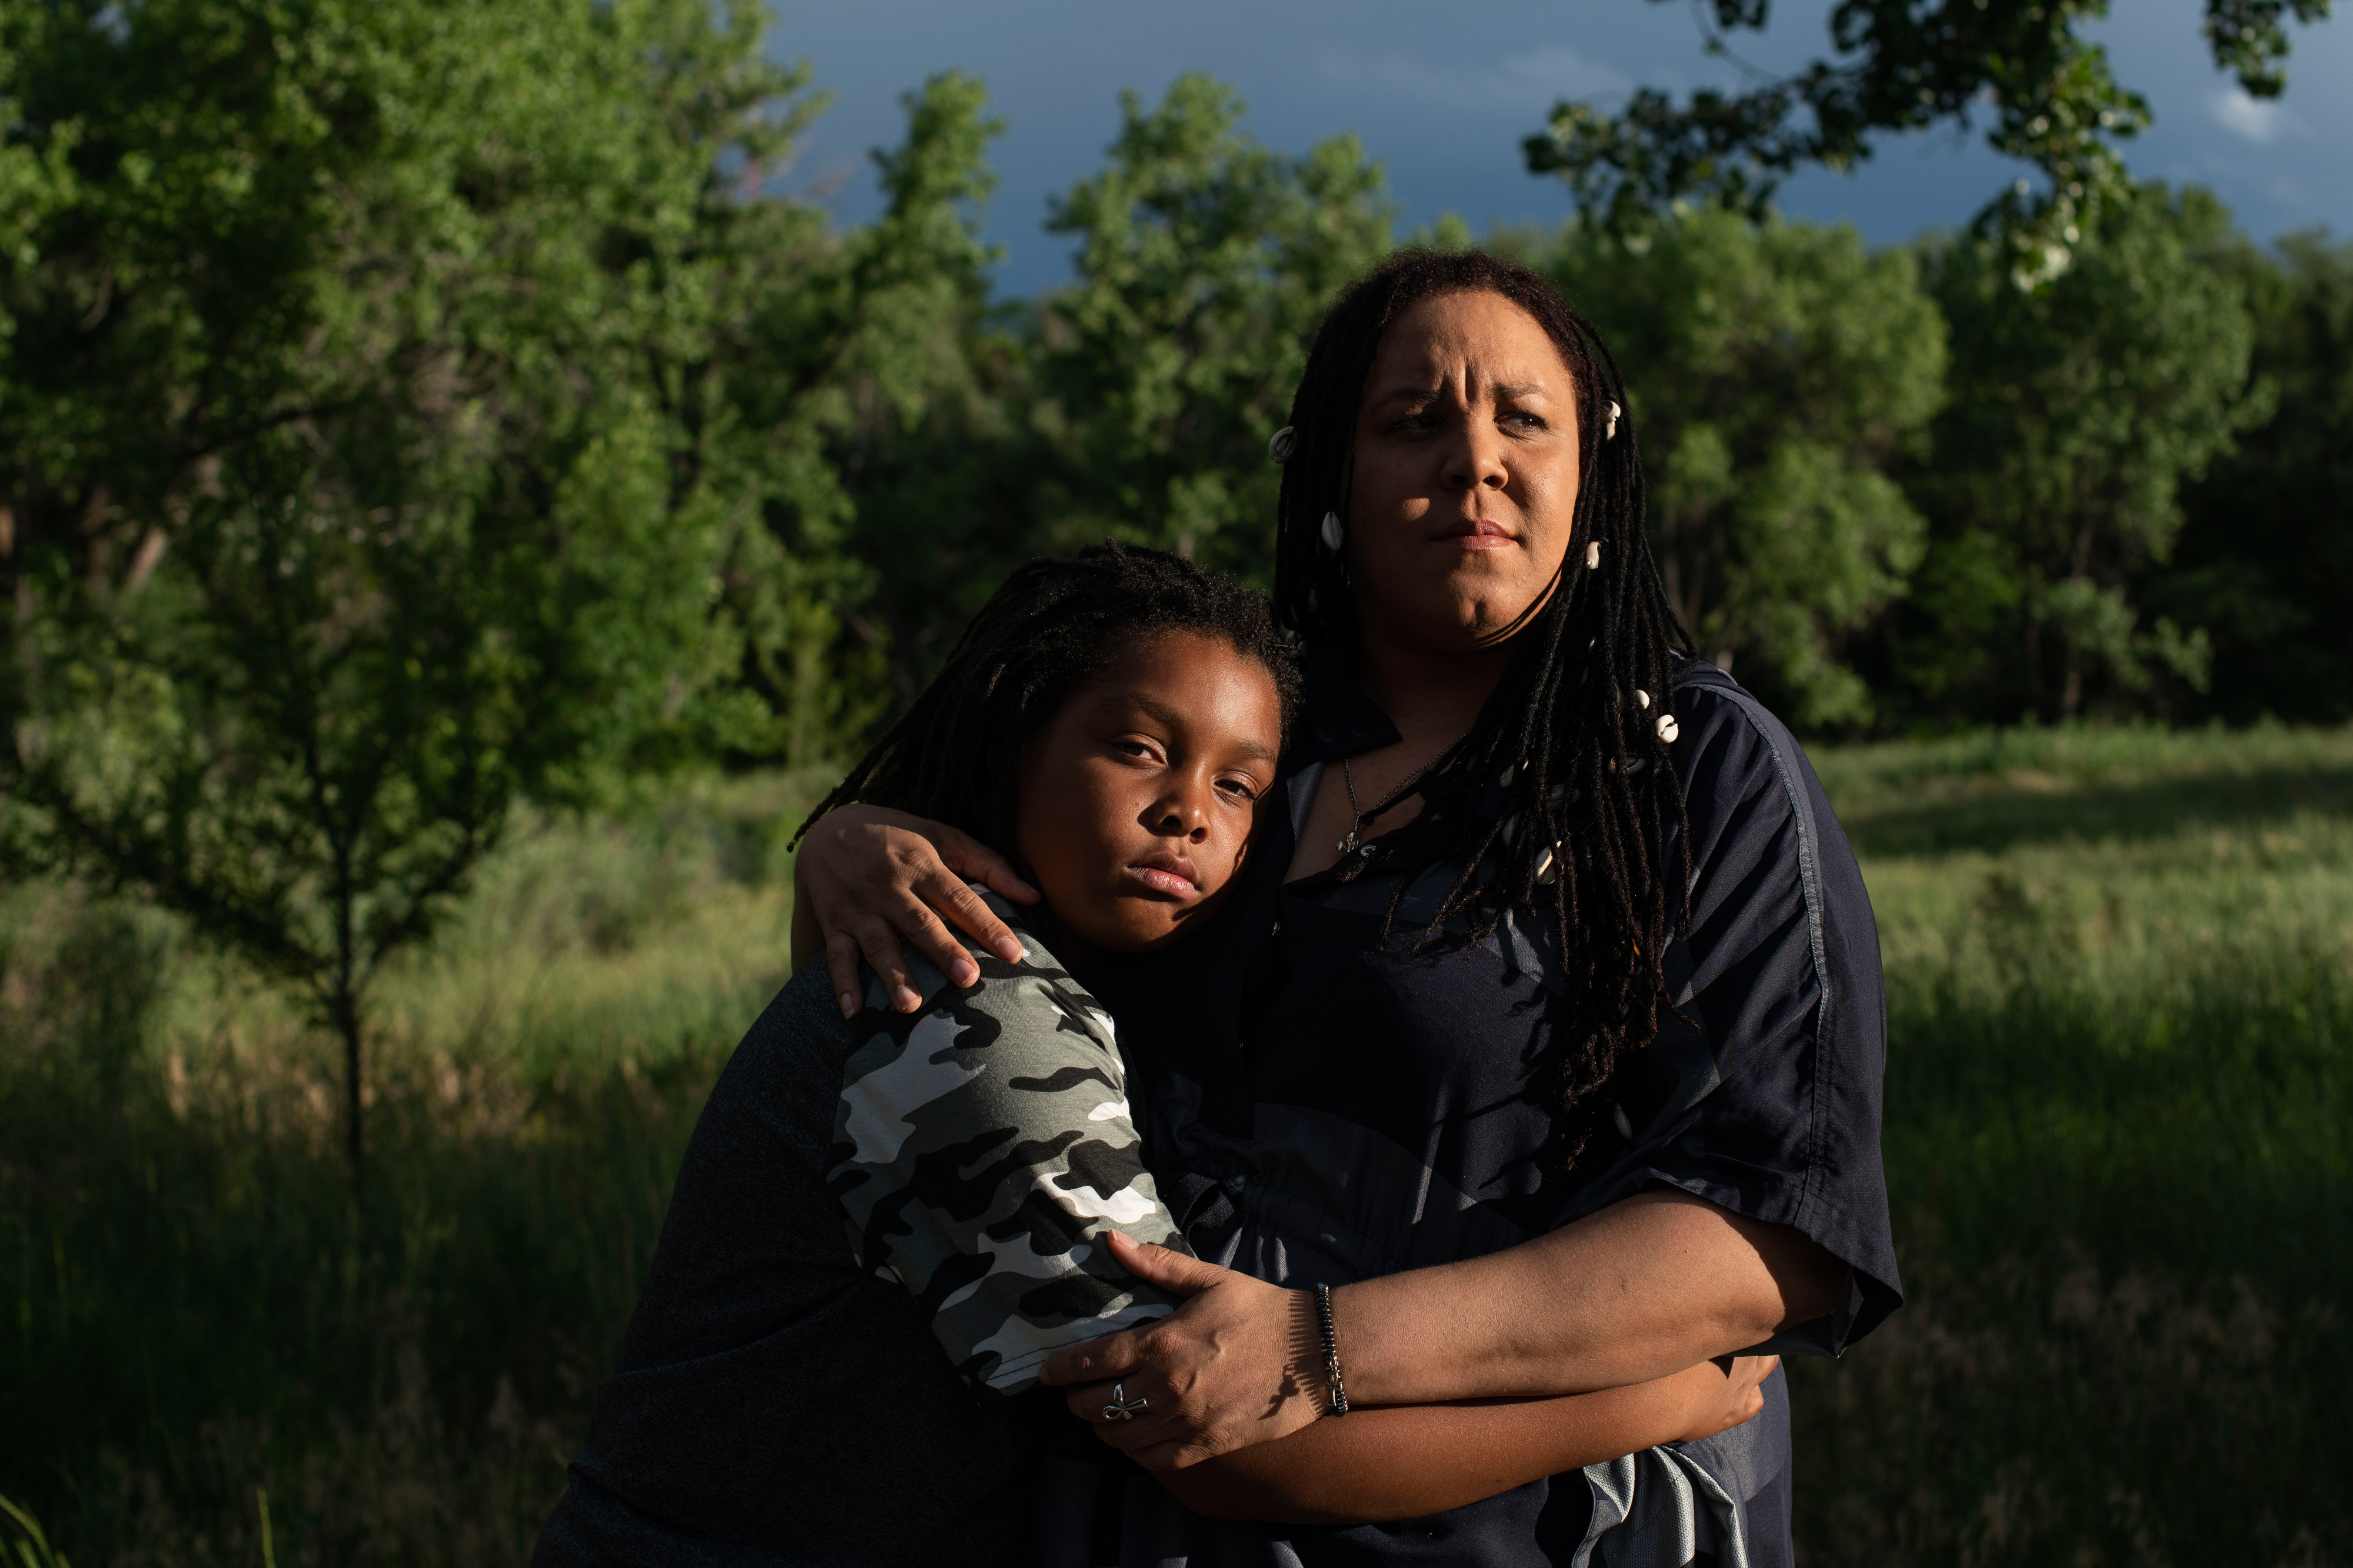 A mother and her 11-year-old son embrace in a park. They are both looking at the camera with serious expressions on their faces.